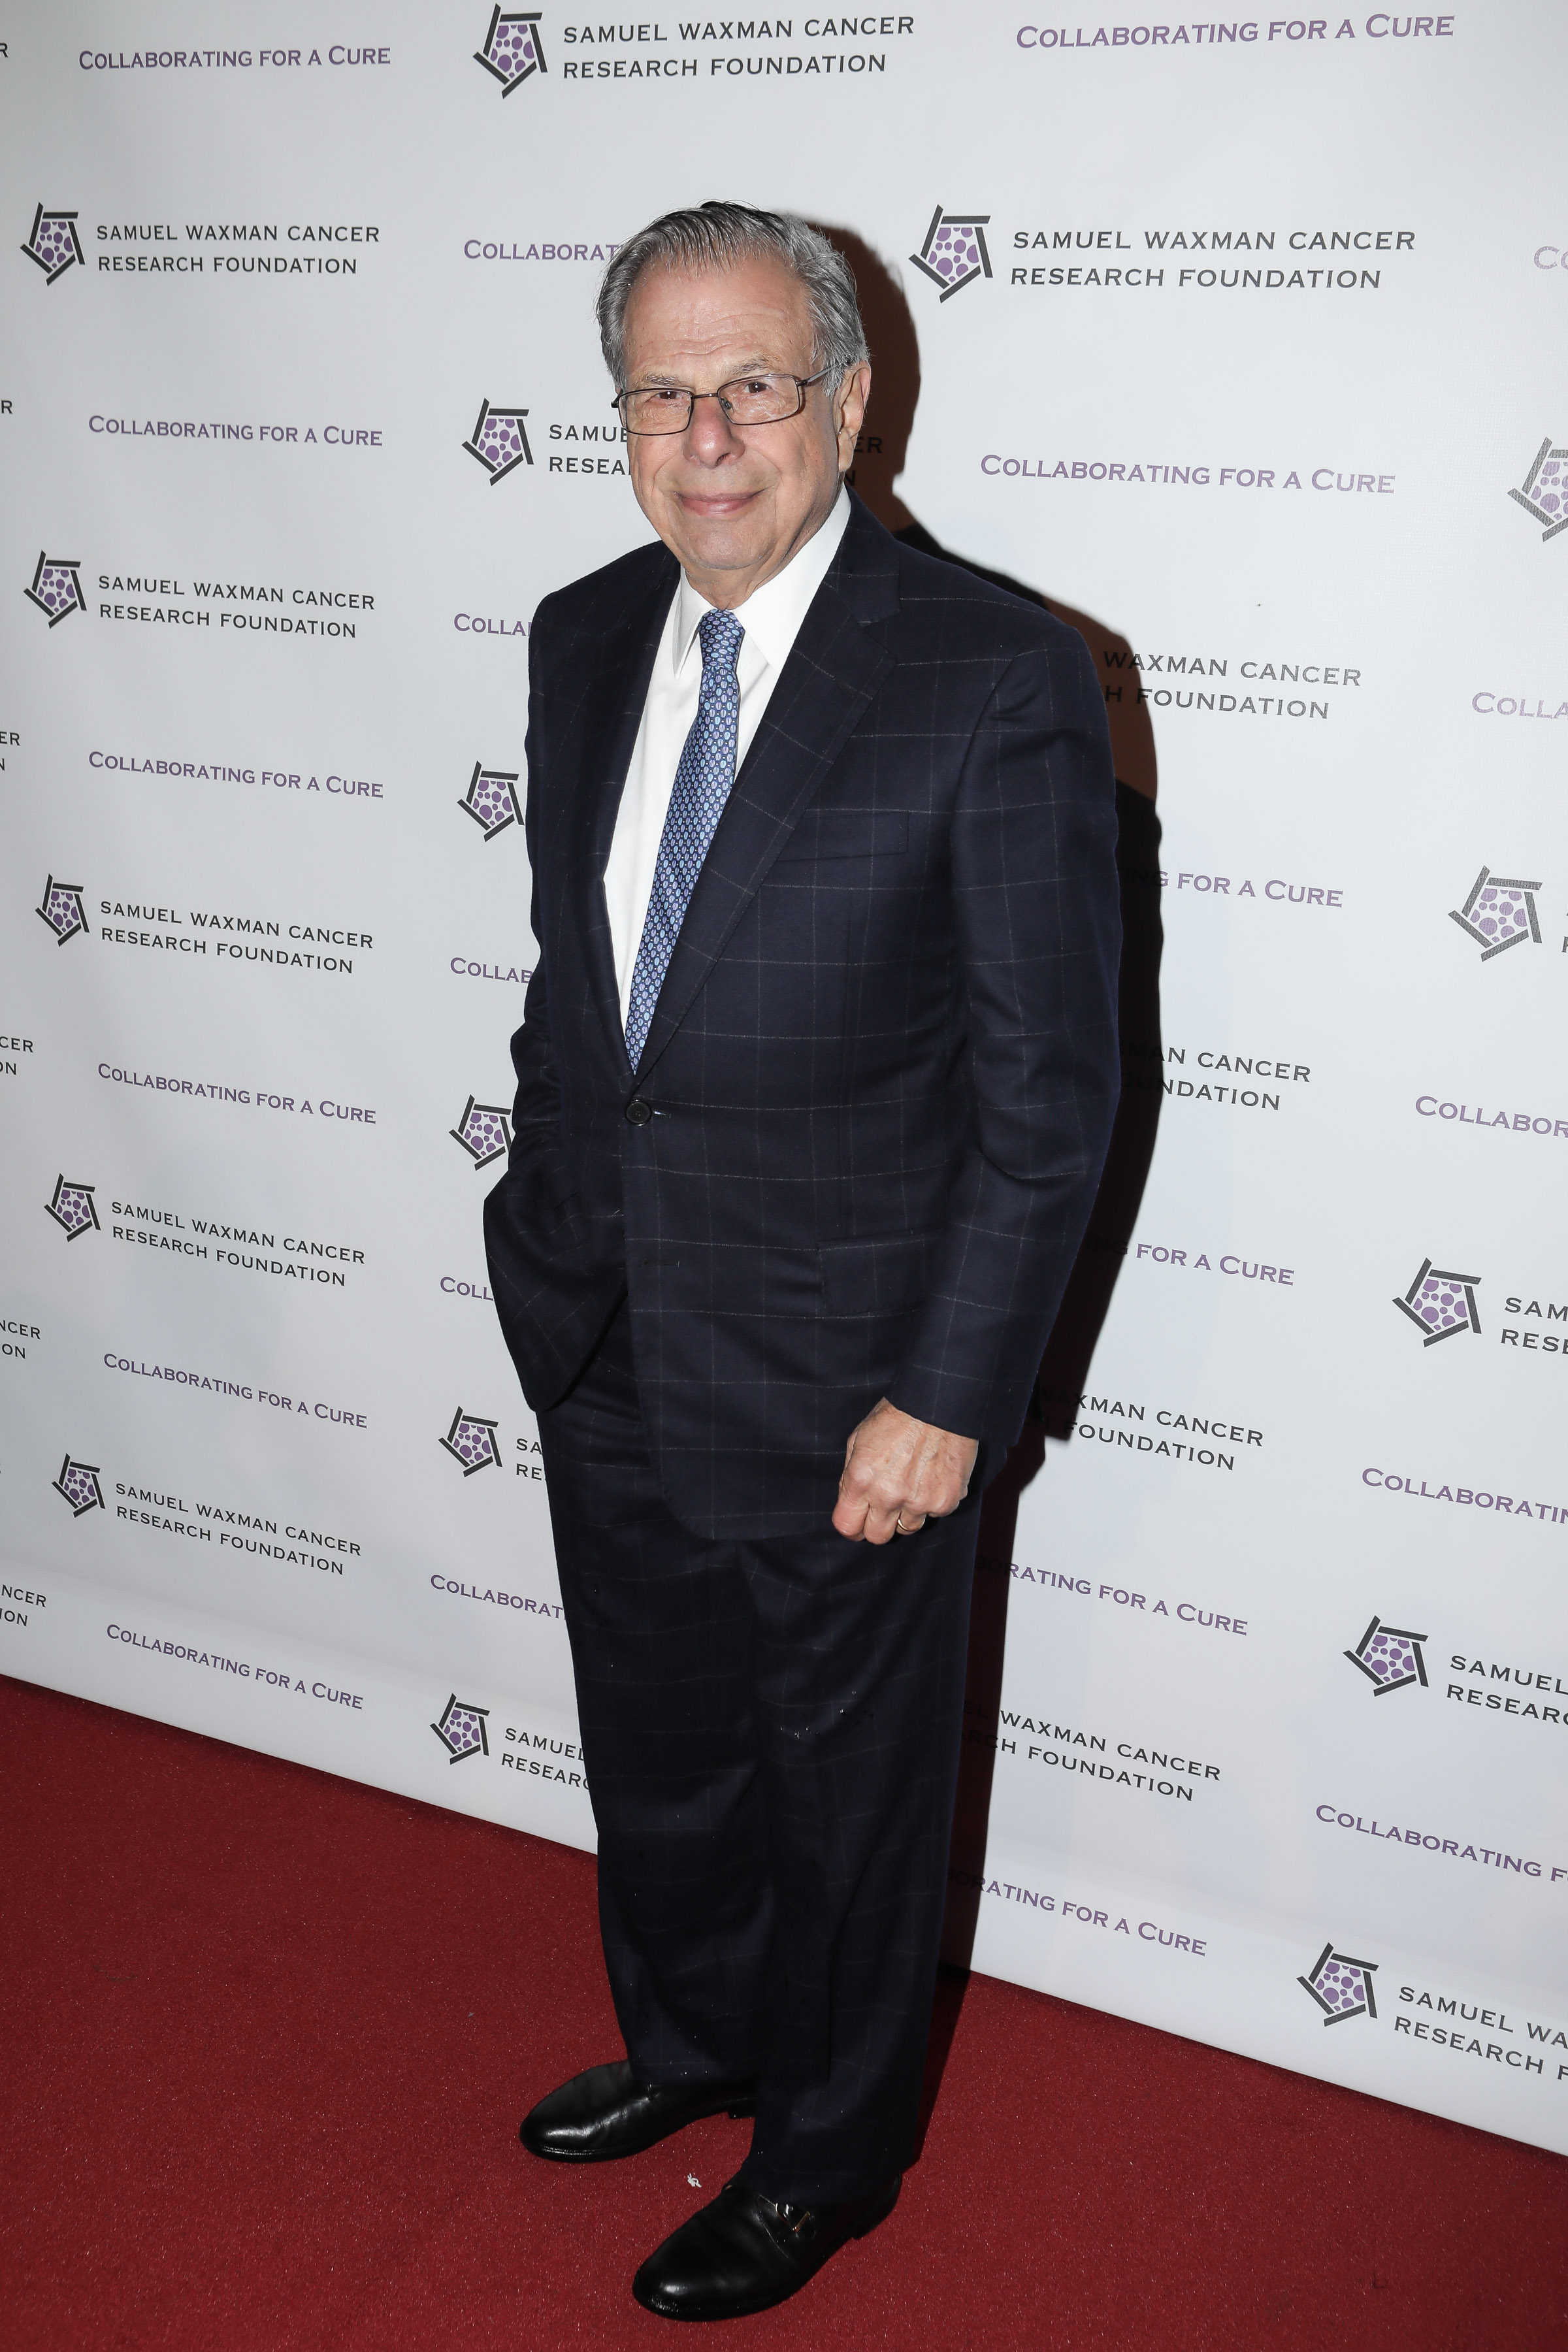 Founder and CEO Dr. Samuel Waxman of Samuel Waxman Cancer Research Foundation at the 21st Anniversary Collaborating for a Cure Gala